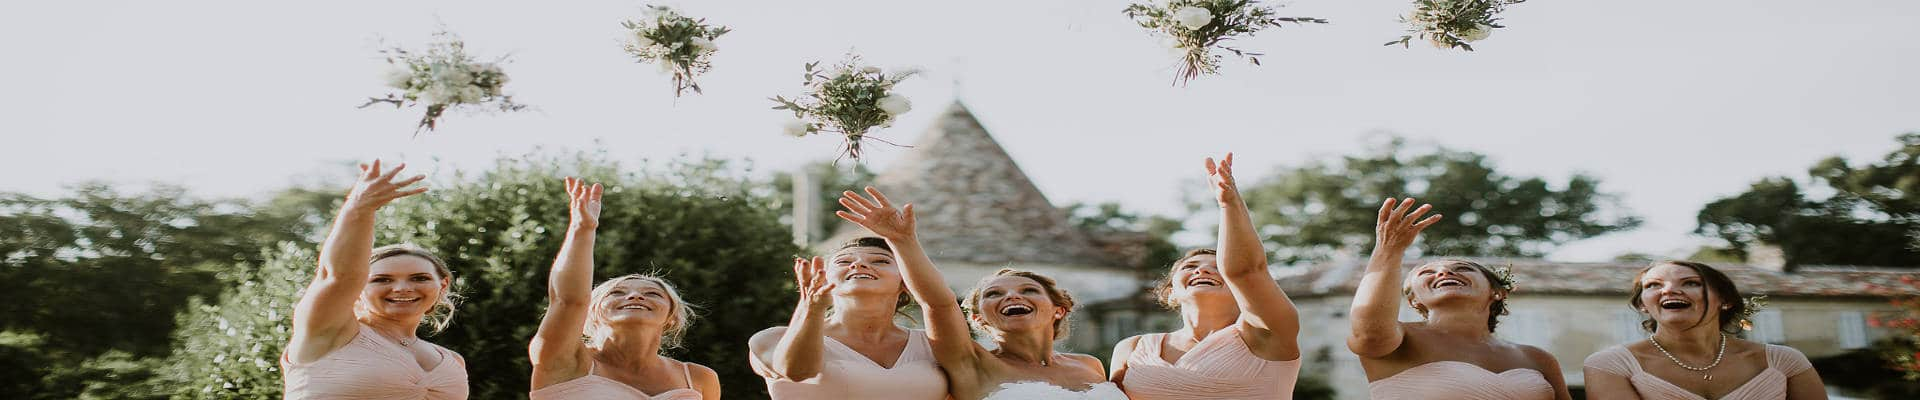 contact a wedding celebrant in france